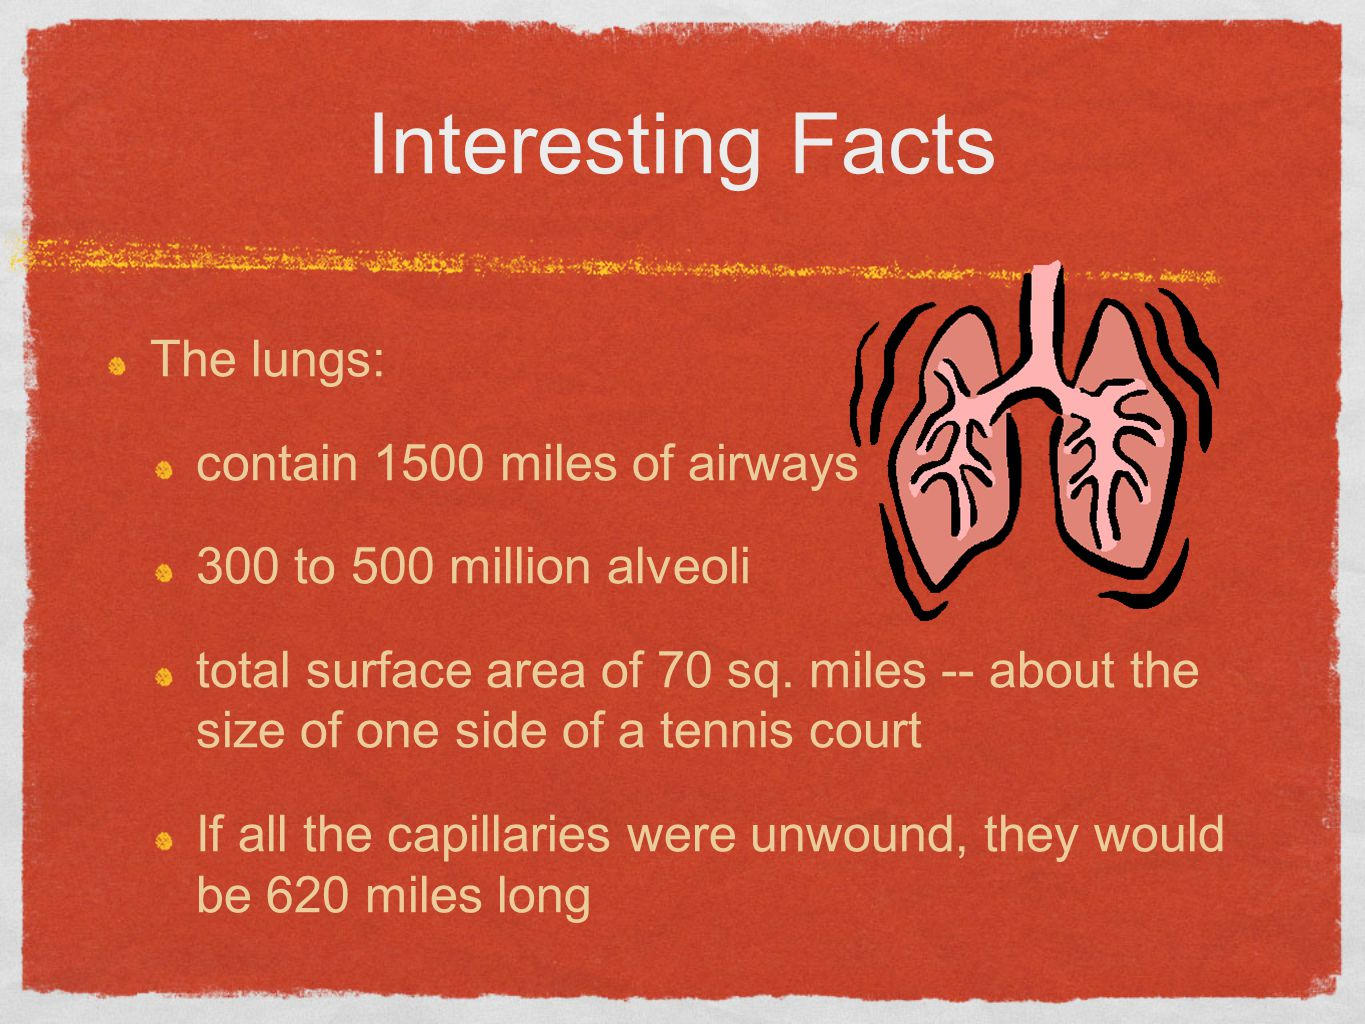 Interesting Facts The lungs: contain 1500 miles of airways